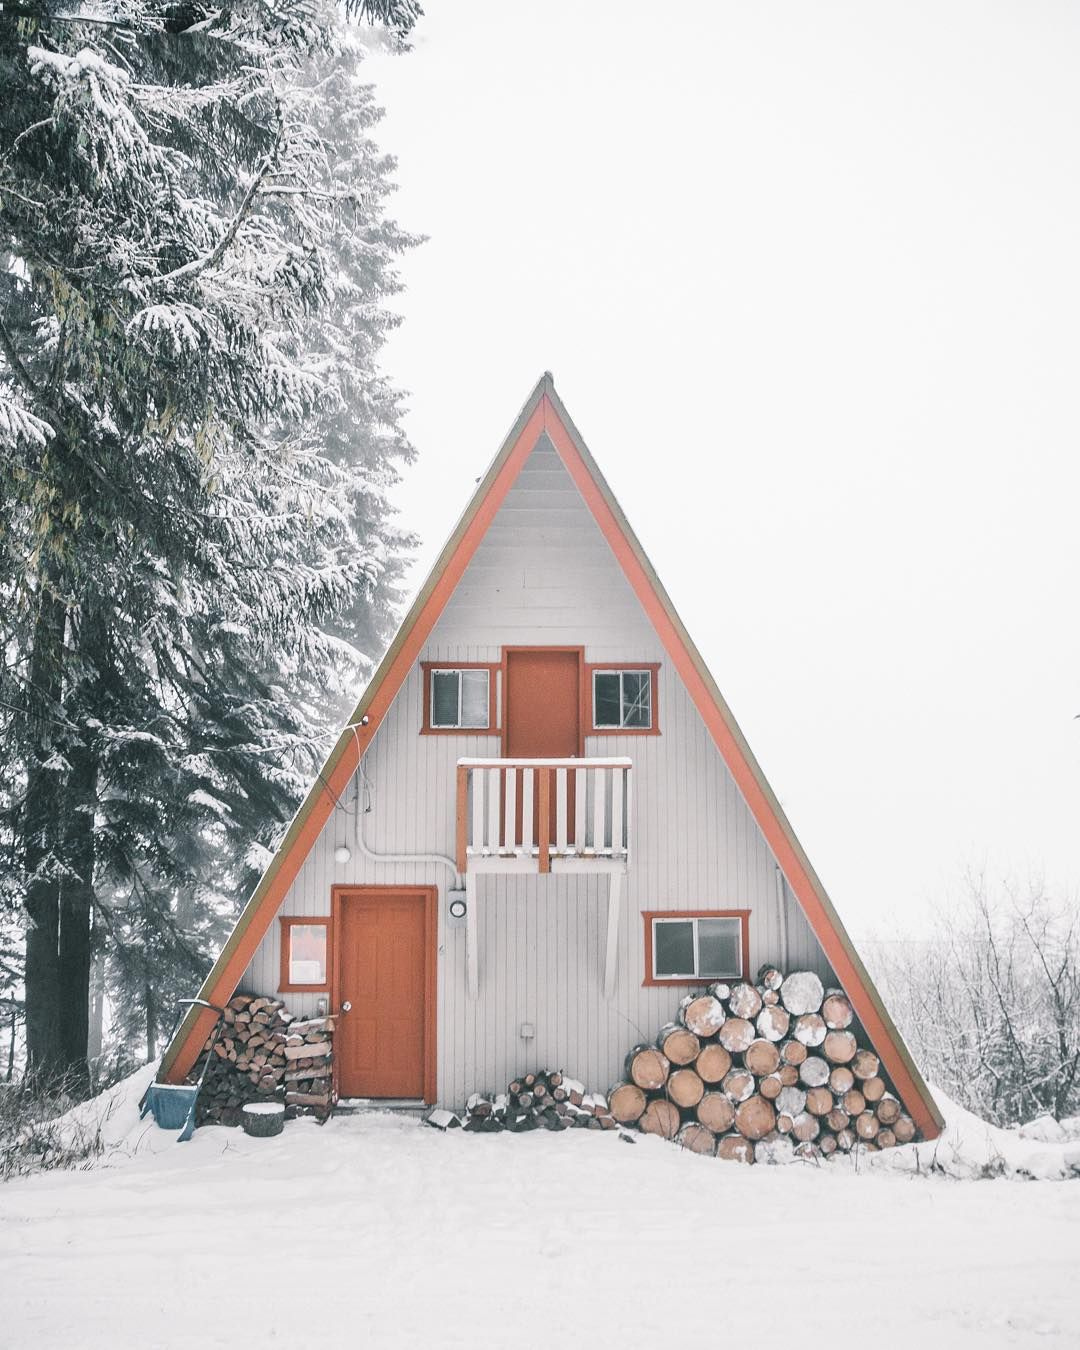 Snowy mountain A-frame cabin. - Small Homes | Pinterest - Huisjes ...